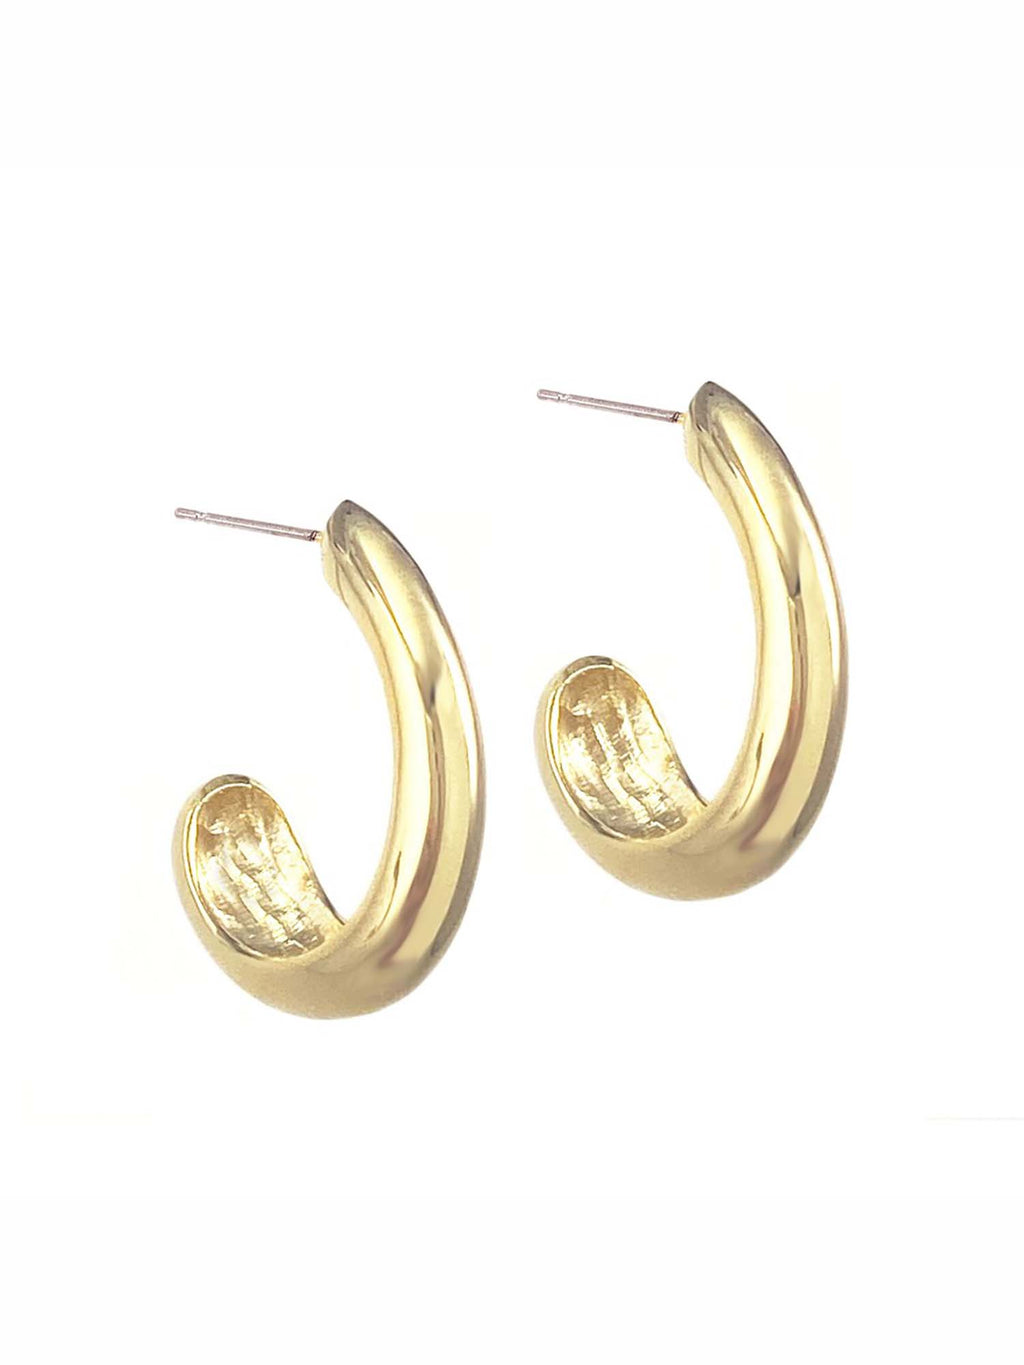 Biko Streamline Hoops - Large